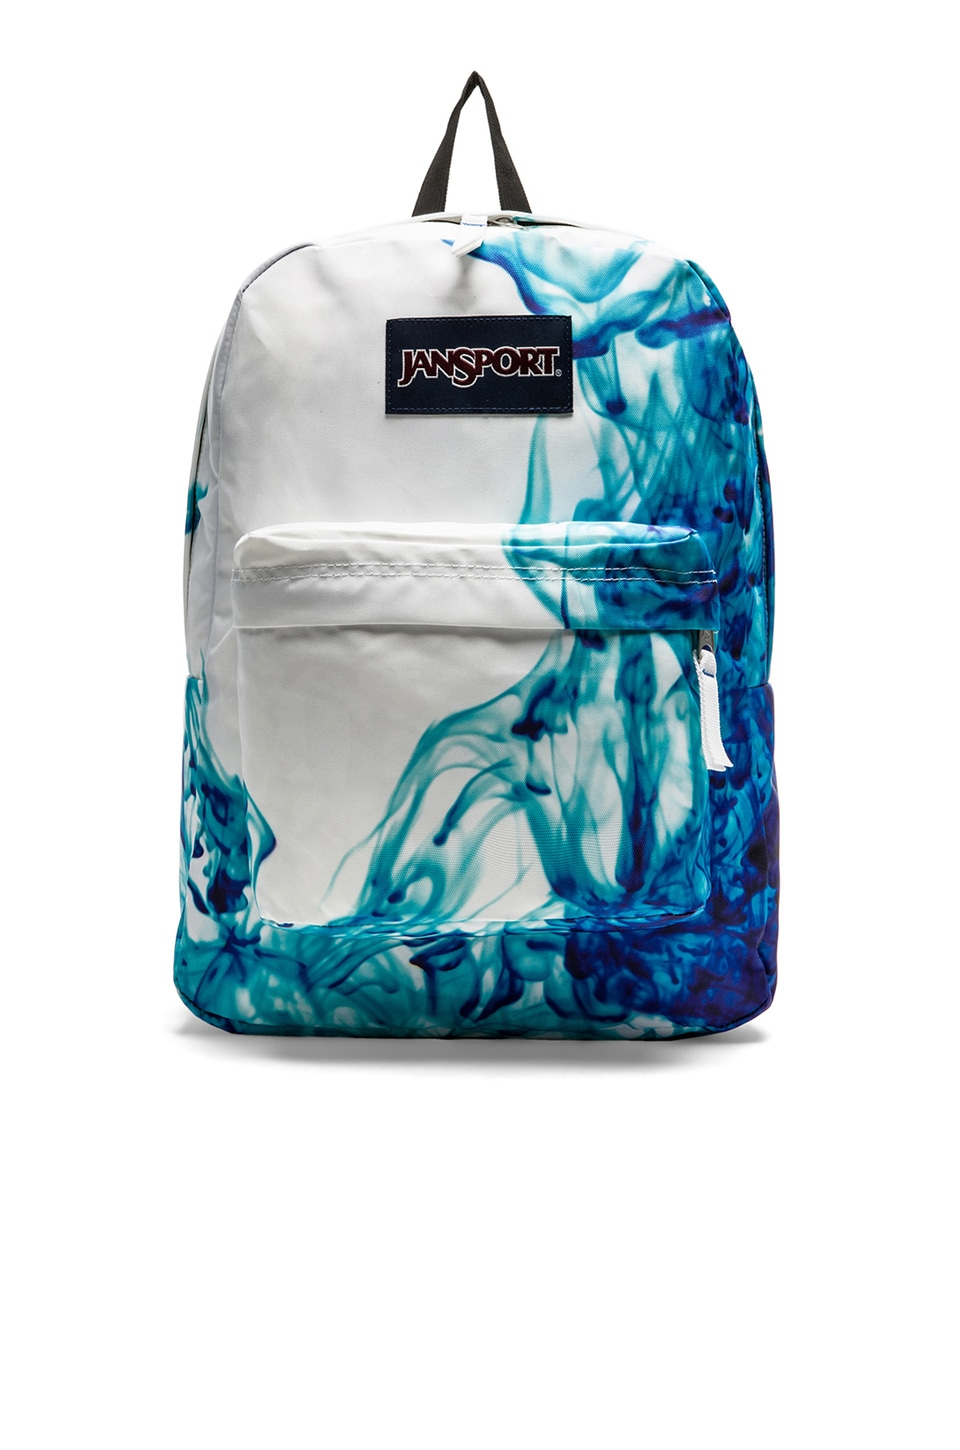 Jansport Backpacks Malaysia - Crazy Backpacks